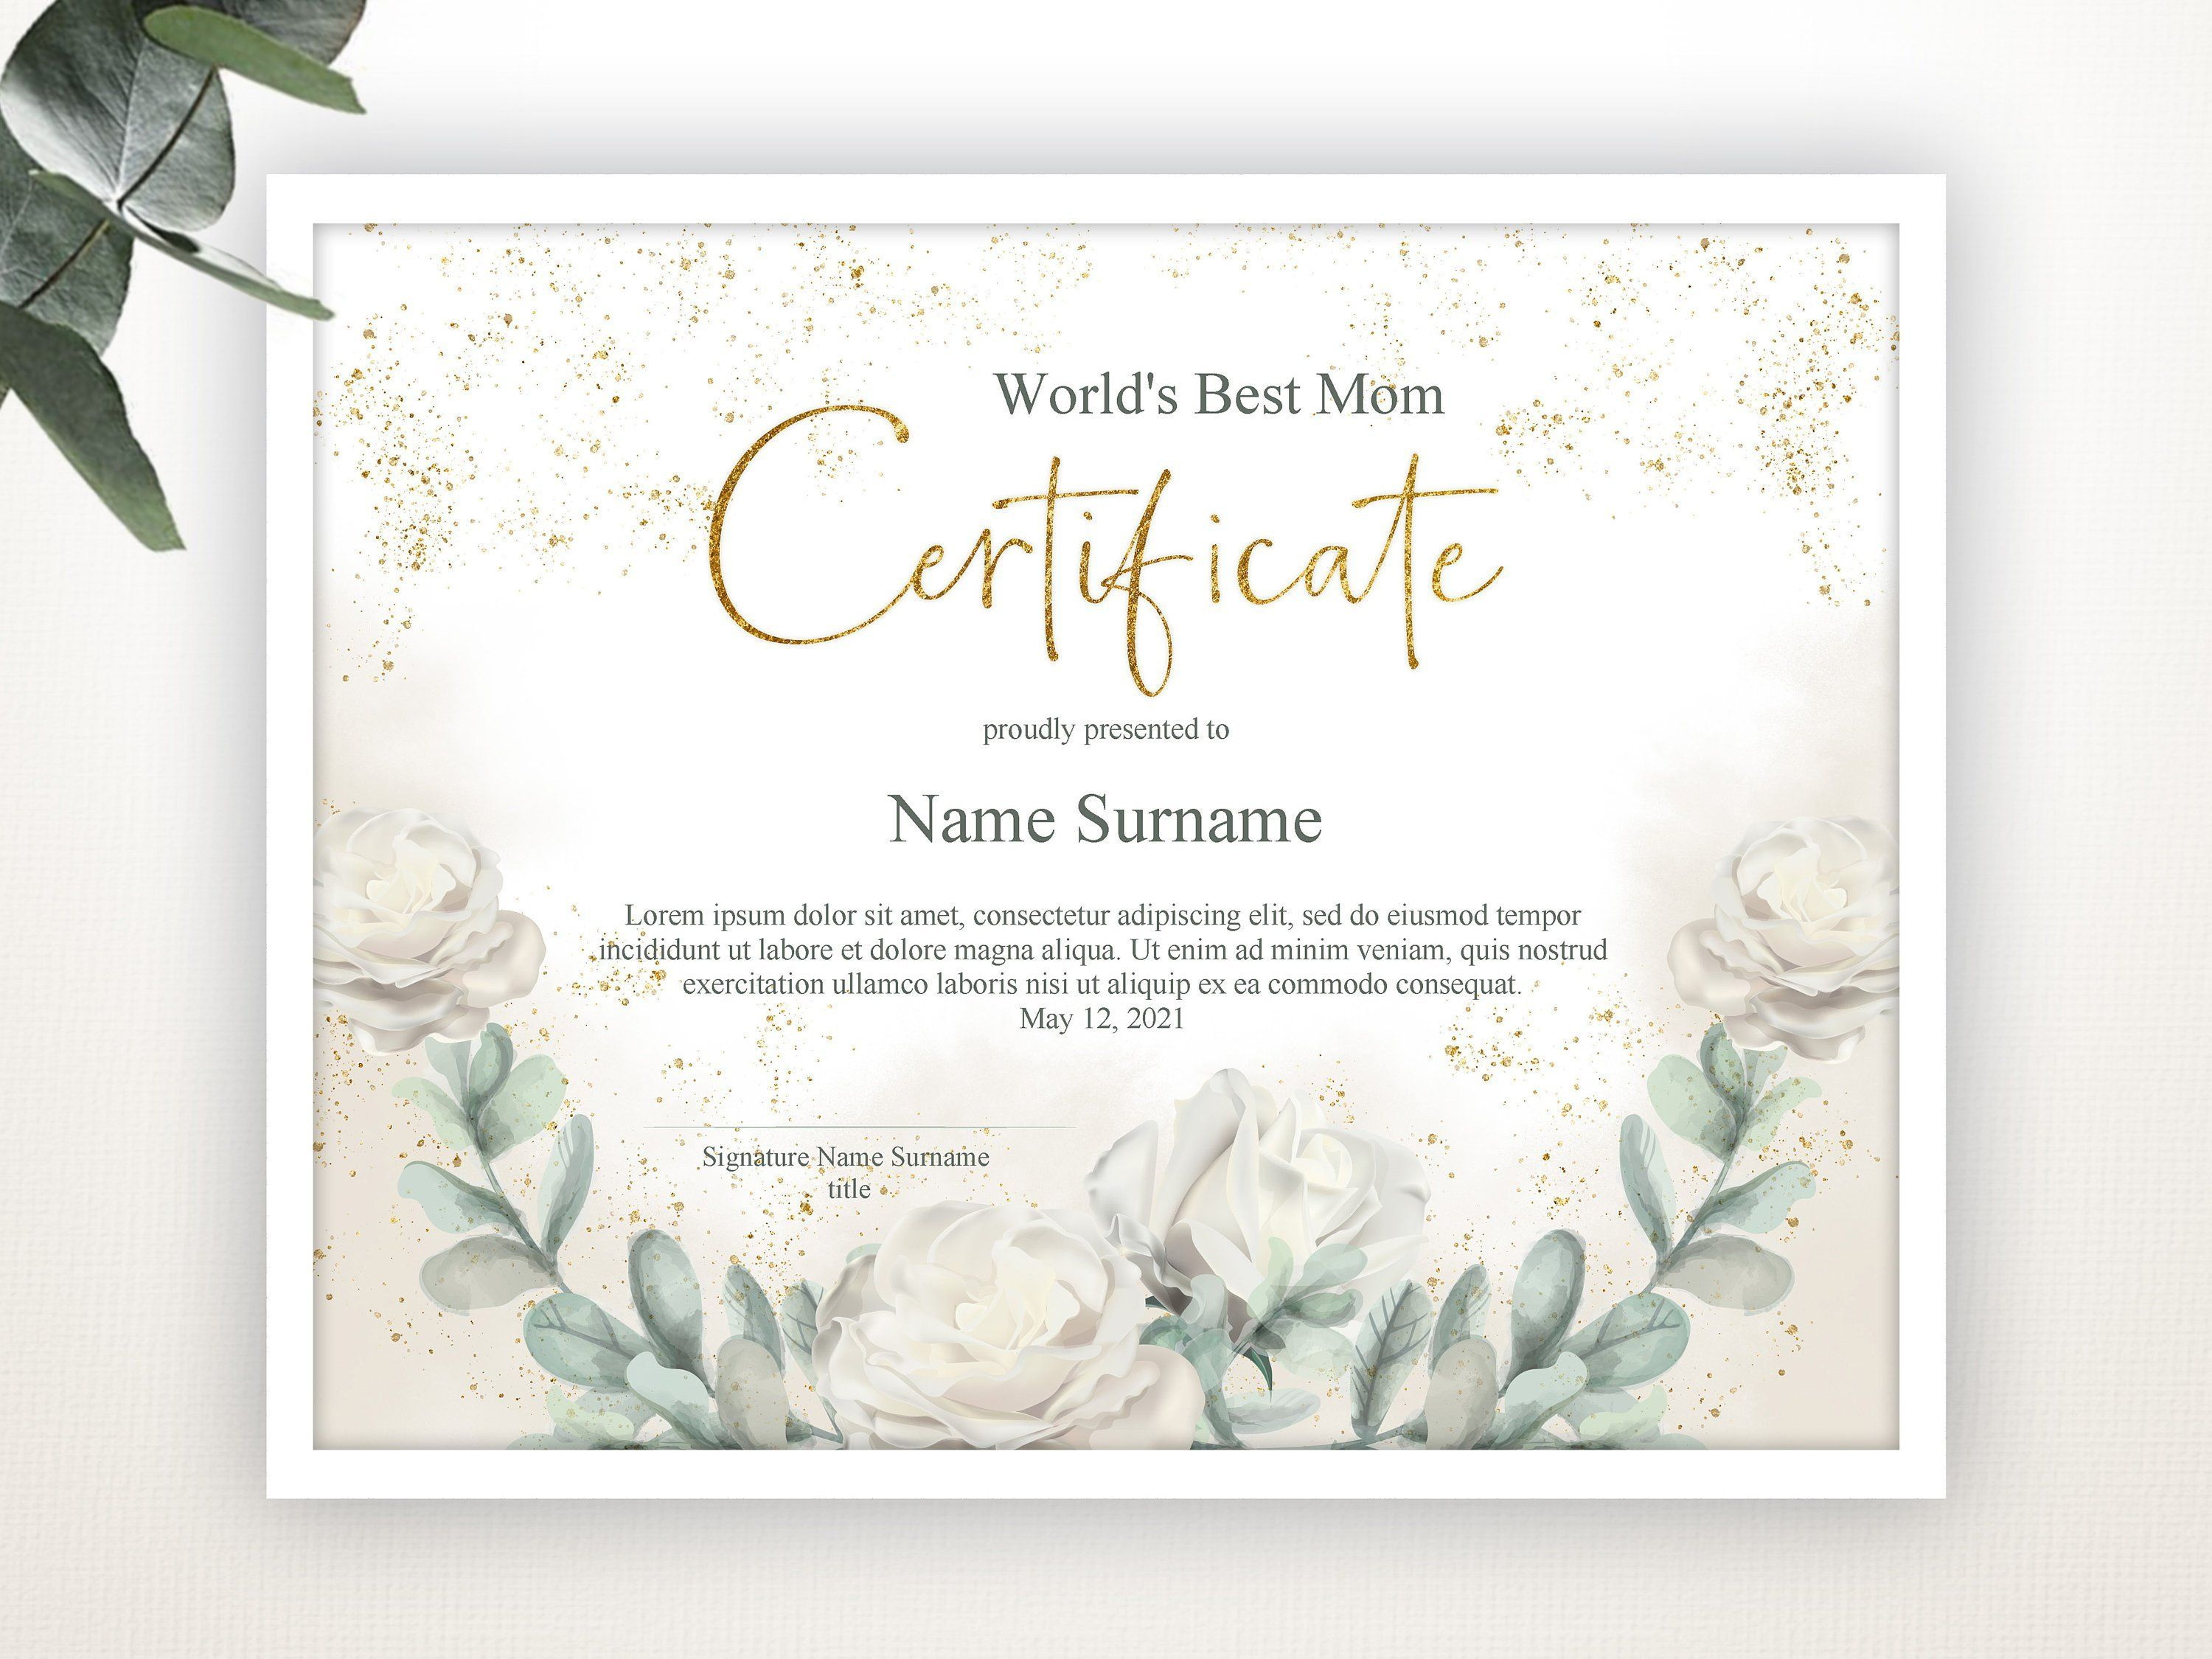 Editable Certificate Template, Gift for Mothers Day, Gift for Friend, Best Mom Award, Printable Certificate Template, Gift Certificate